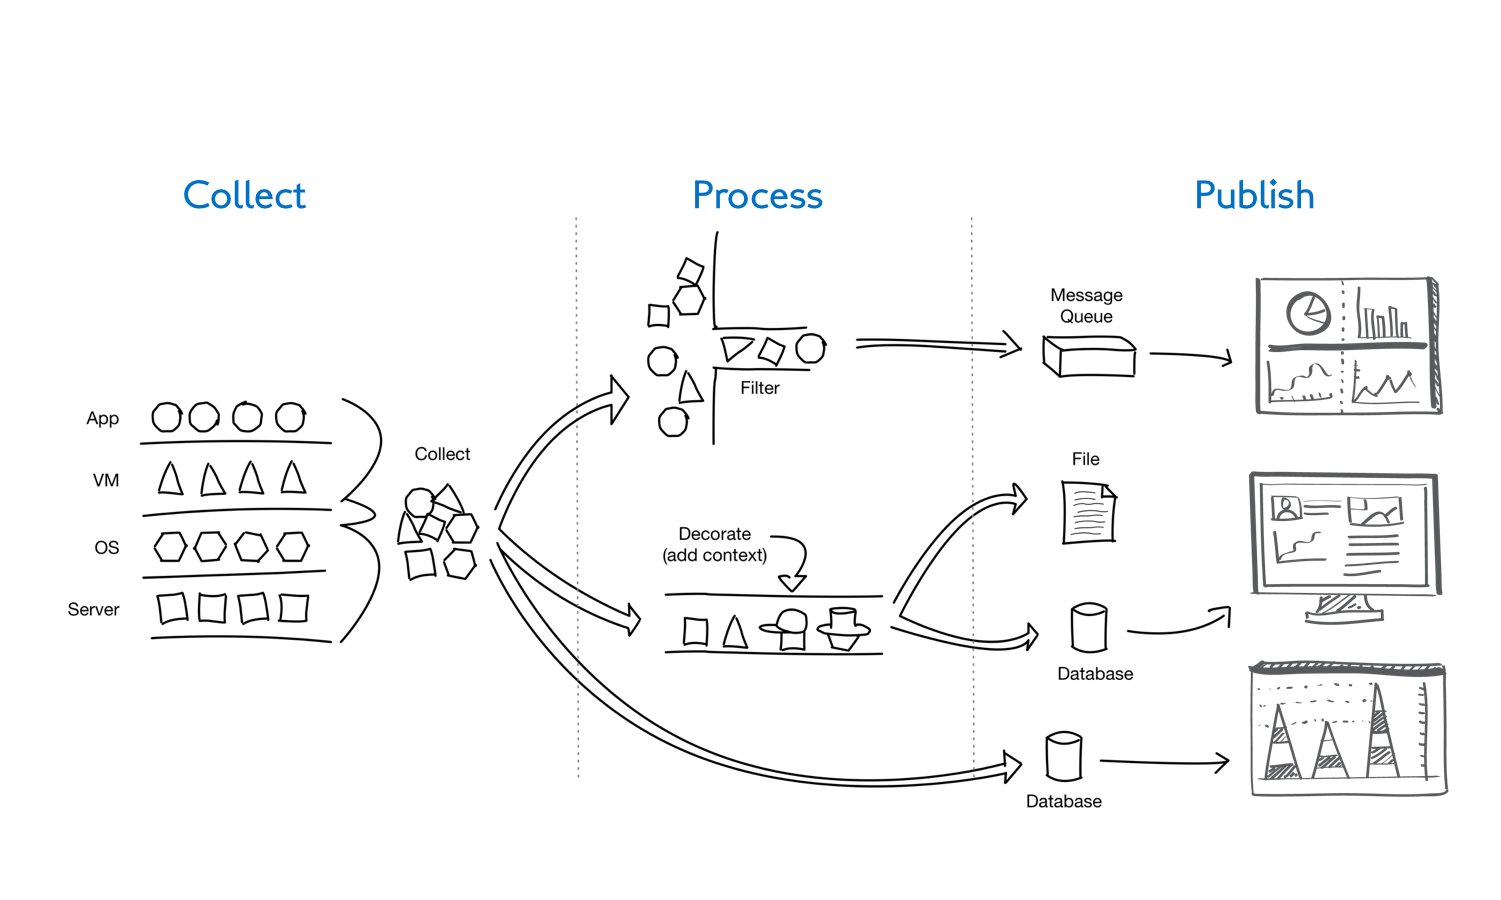 workflow-collect-process-publish